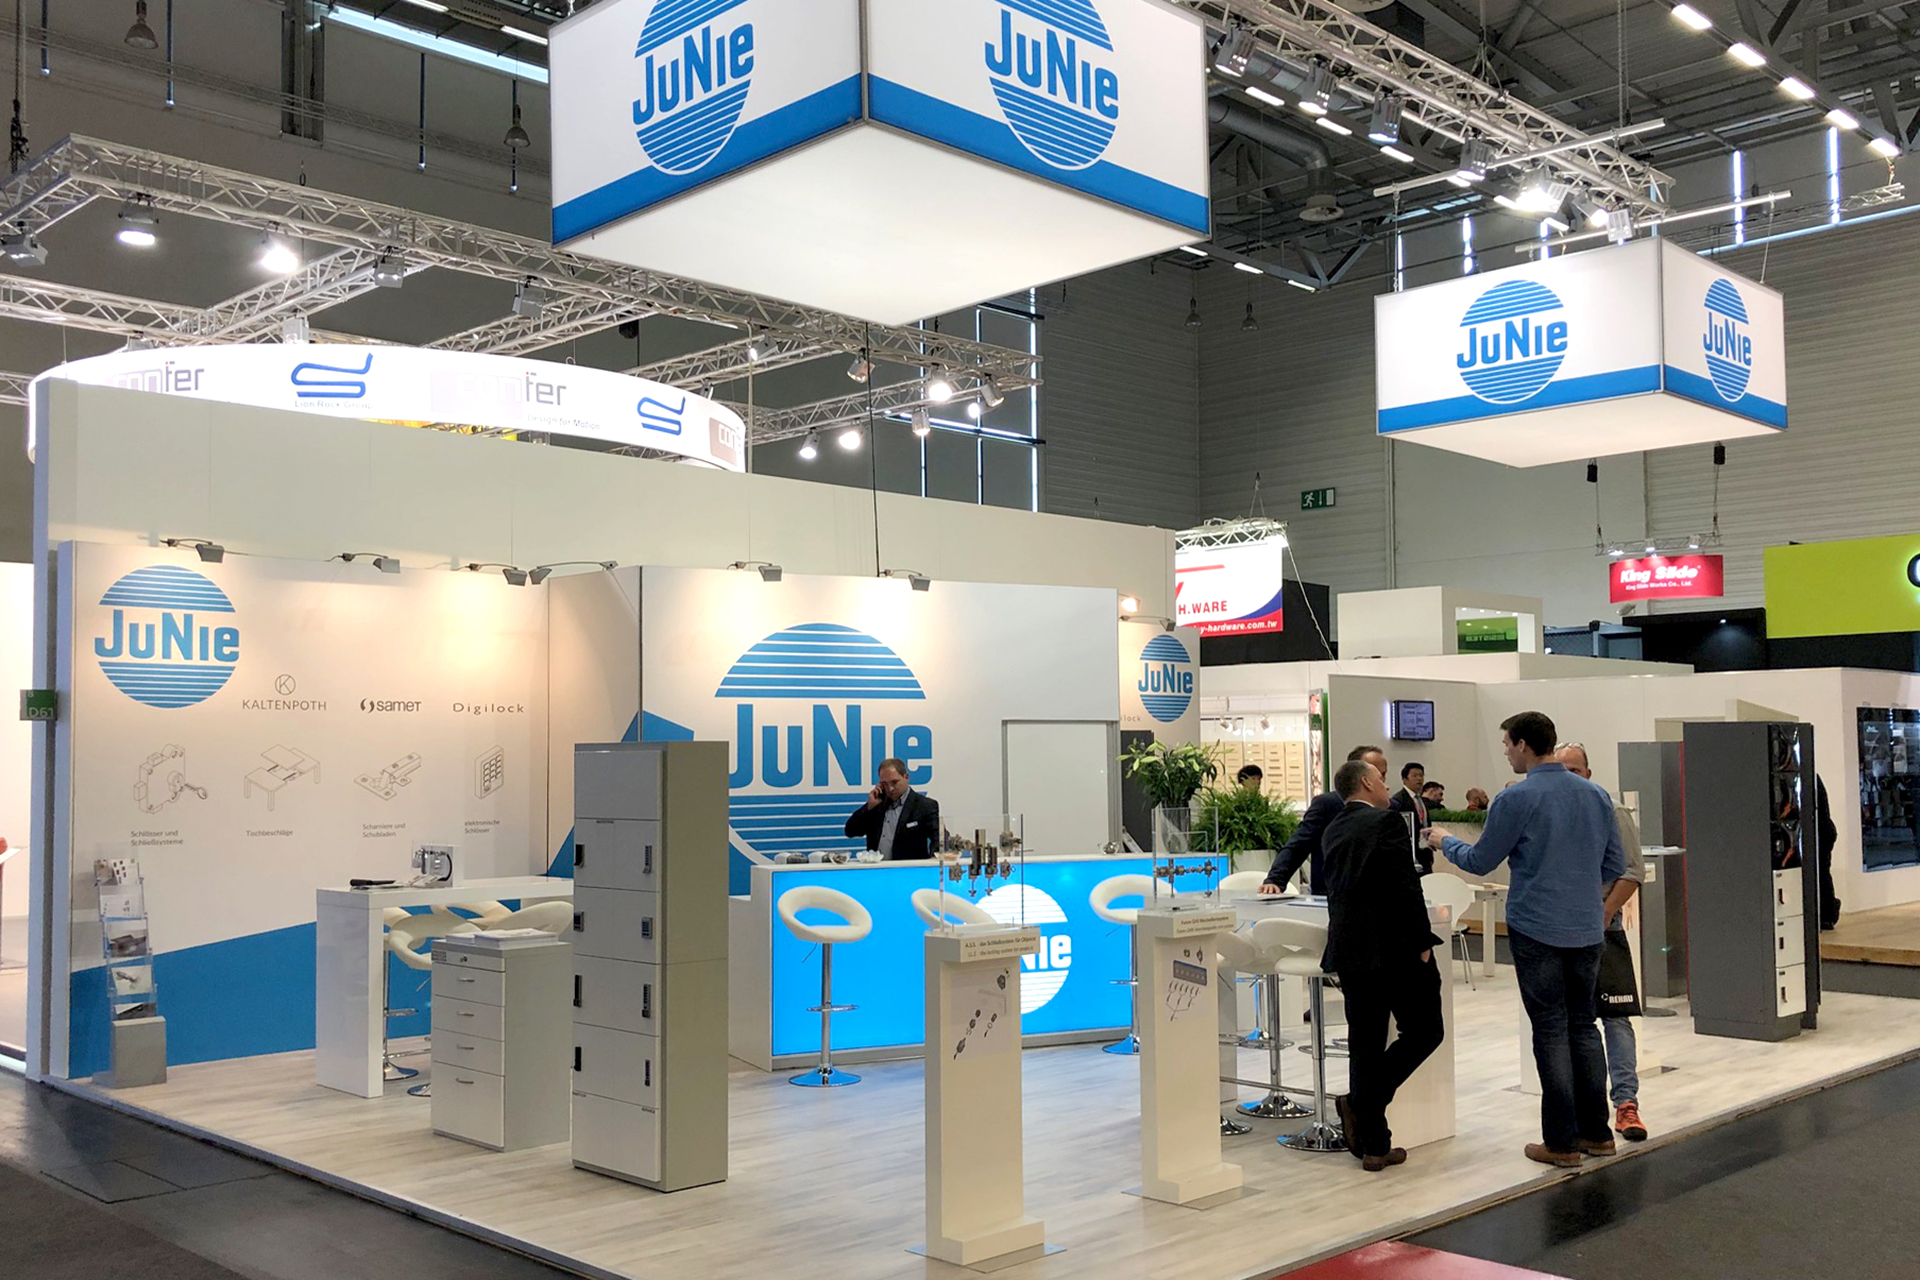 Messestand JuNie - Interzum 2019